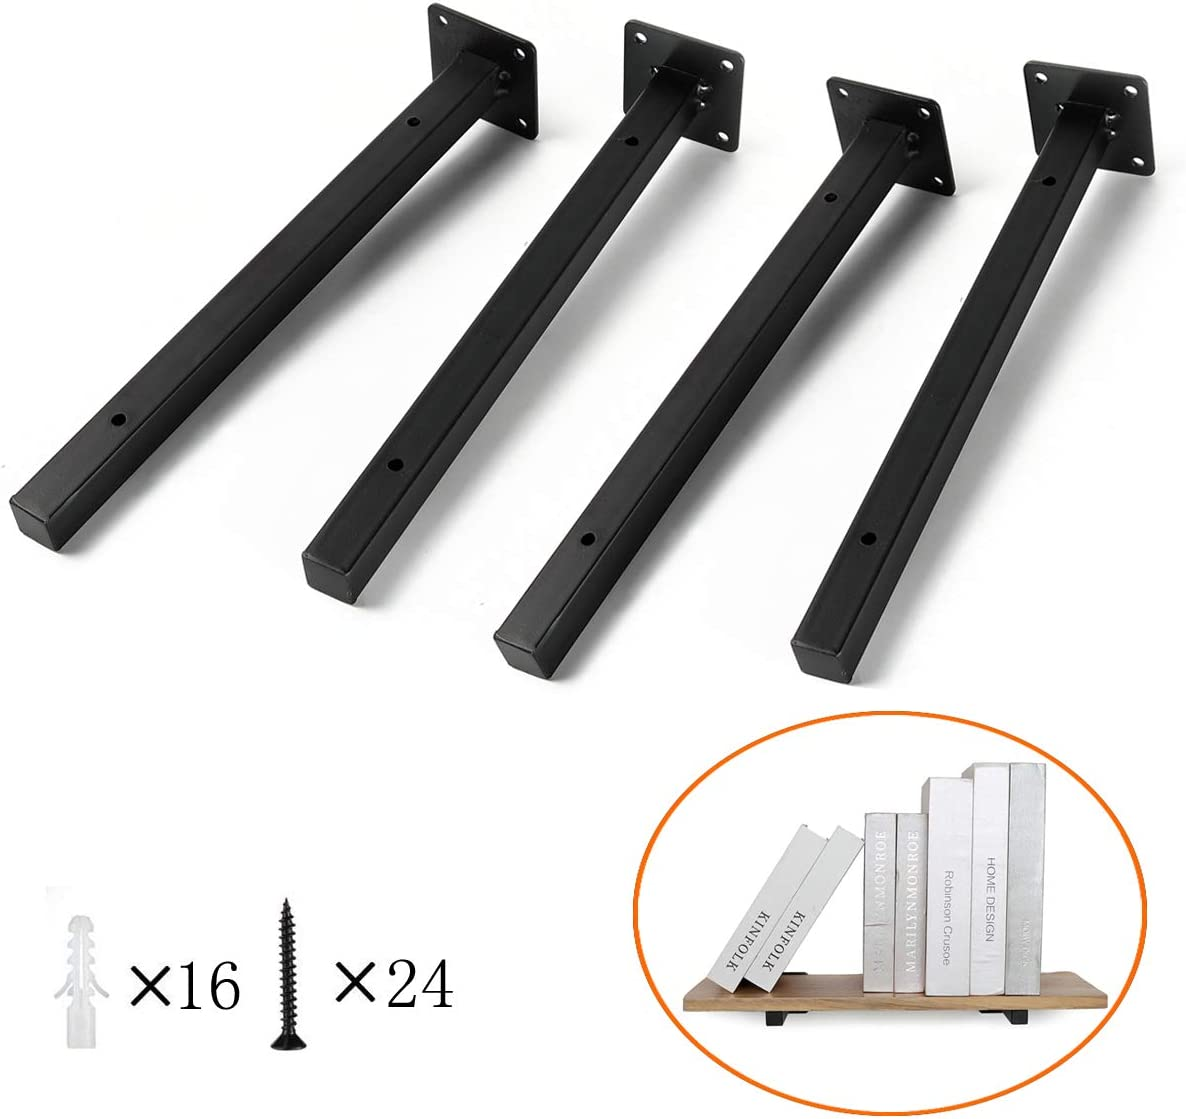 "Heavy Duty Floating Shelf Brackets, 14"" Blind Industrial Metal Shelving Brackets Wall Mounted Concealed Iron Hidden Hardware Brace for DIY or Custom Wall Shelving (4 Pack - Black)"